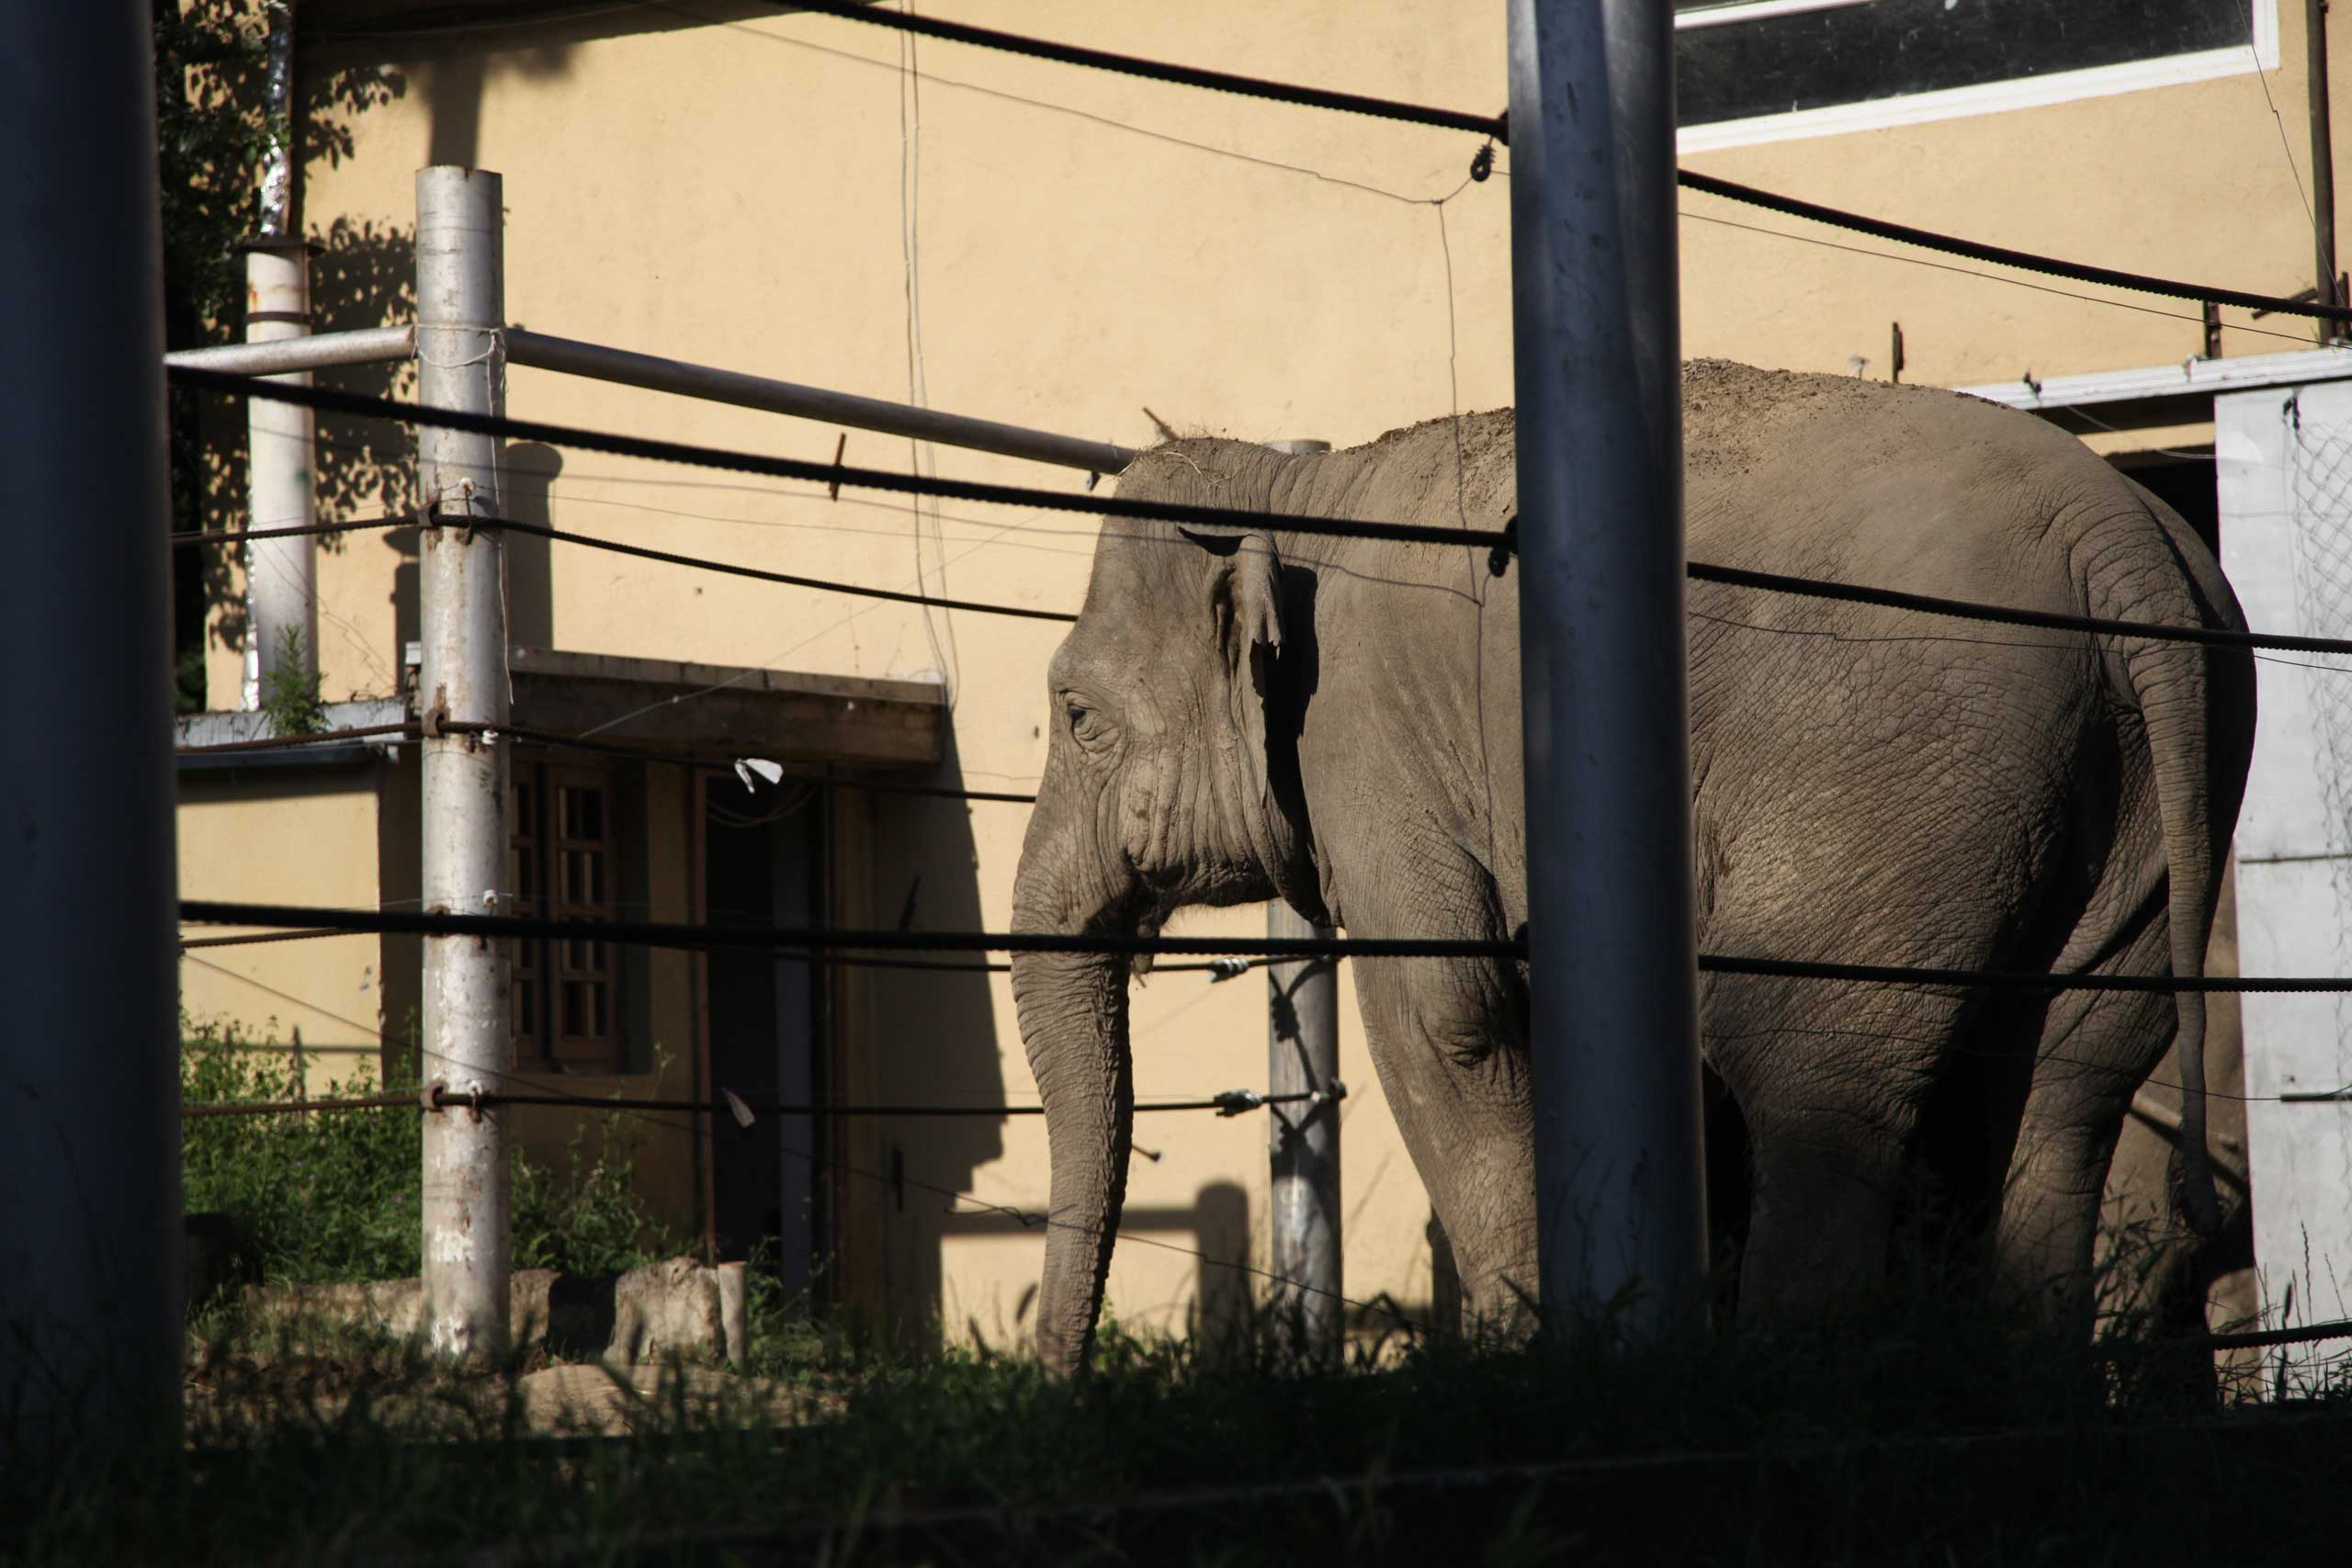 An elephant that escaped from a flooded zoo stands behind bars inside the zoo in Tbilisi, Georgia on June 14, 2015.